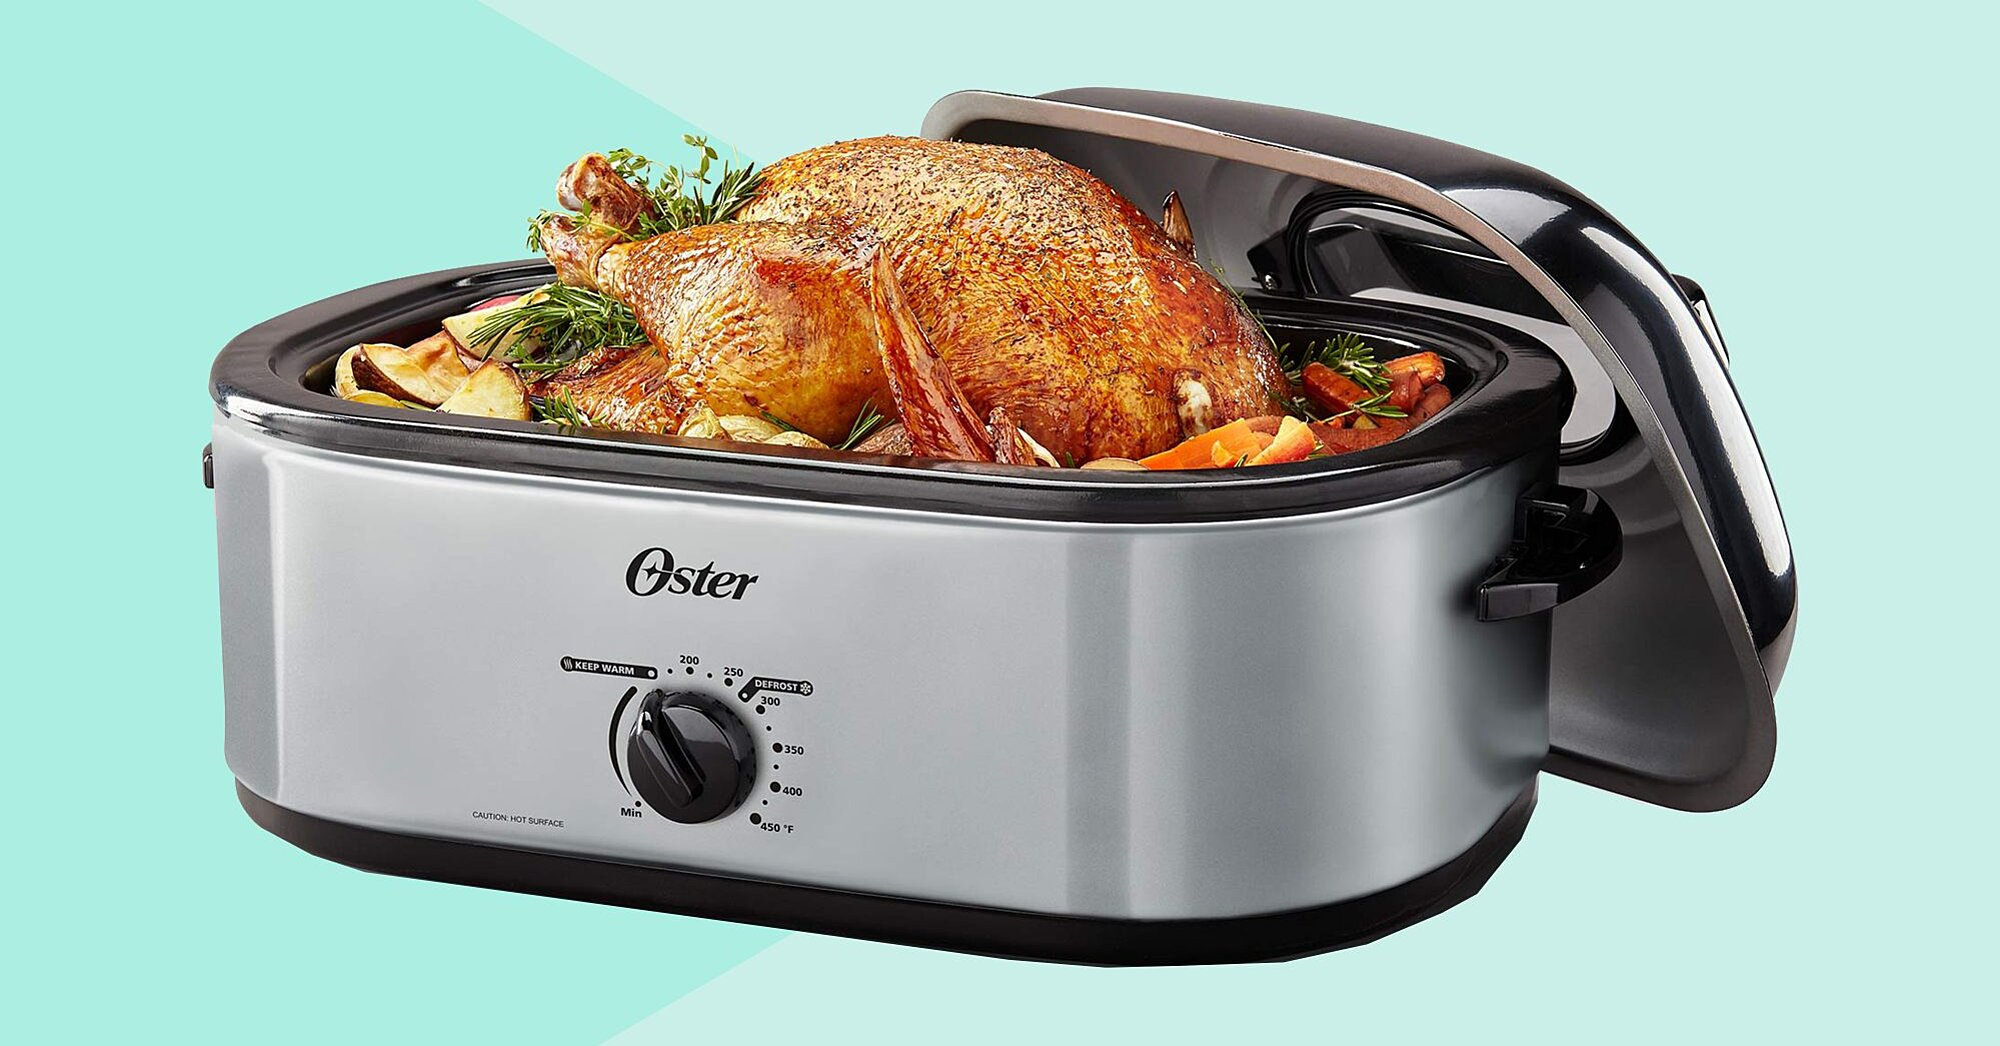 This $30 Roaster Cooks Turkey Quicker Than an Oven—and It Has a Genius Hidden Feature